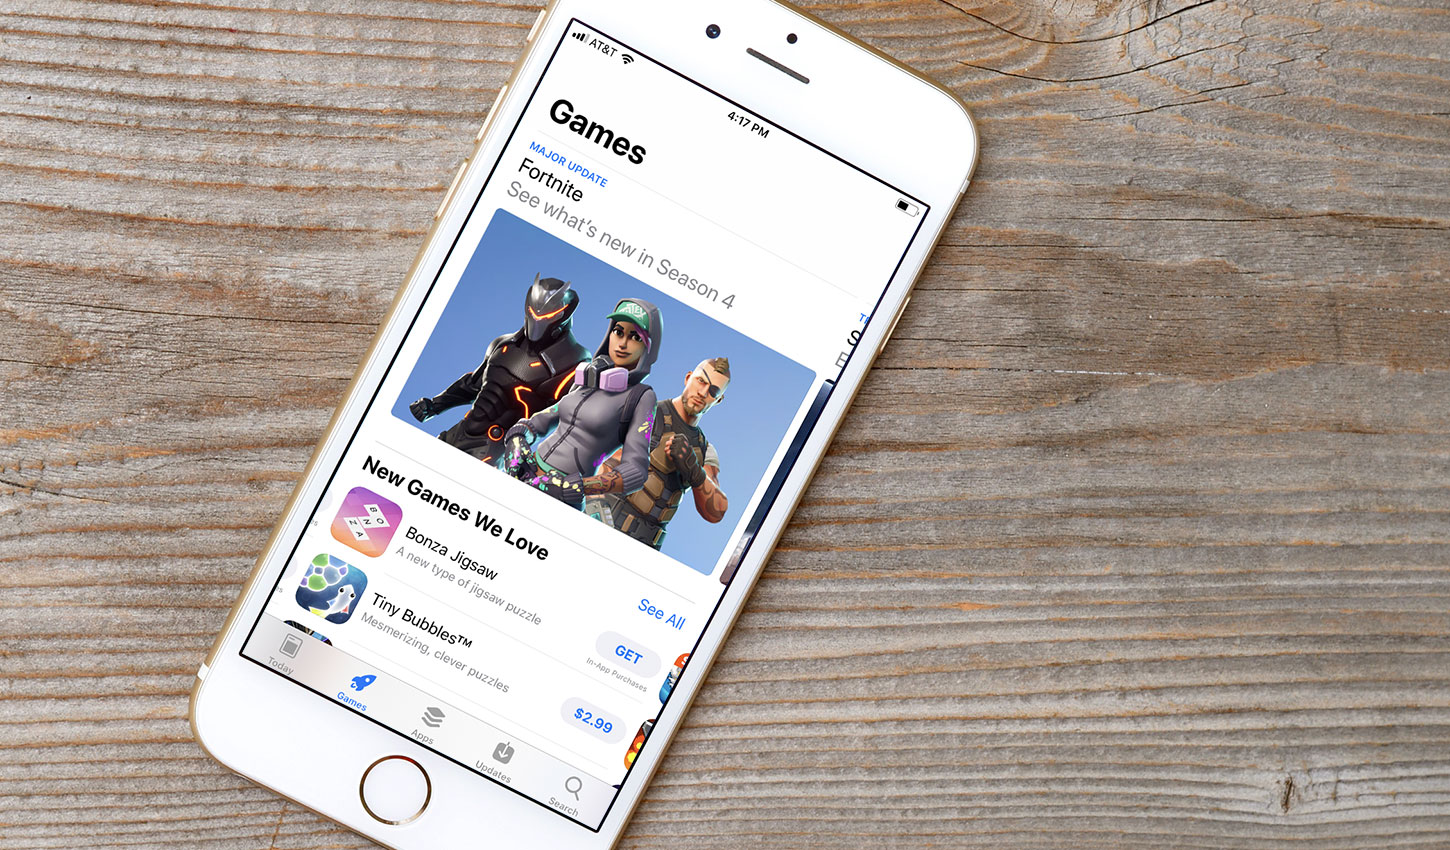 More Than 25% of iOS Game Downloads Now Come from Browsing